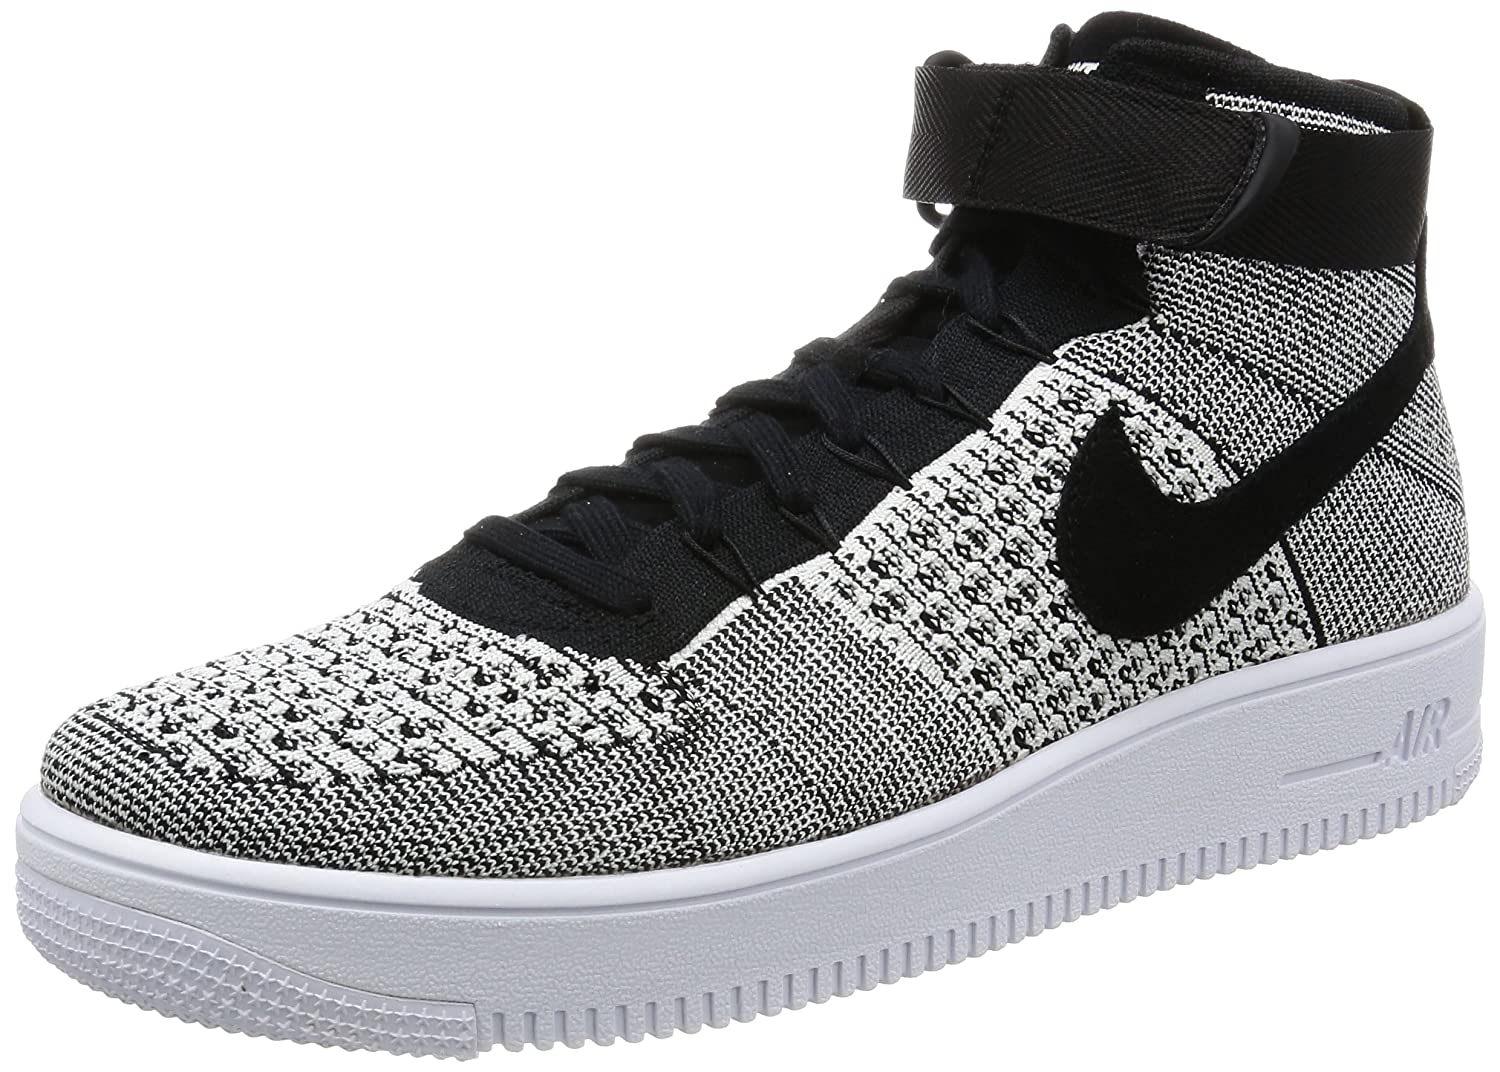 sneakers for cheap 4ff76 83a3d Nike Air Force 1 Ultra Flyknit MID Black White 817420-005 (Size  8. 5)  Buy  Online at Low Prices in India - Amazon.in